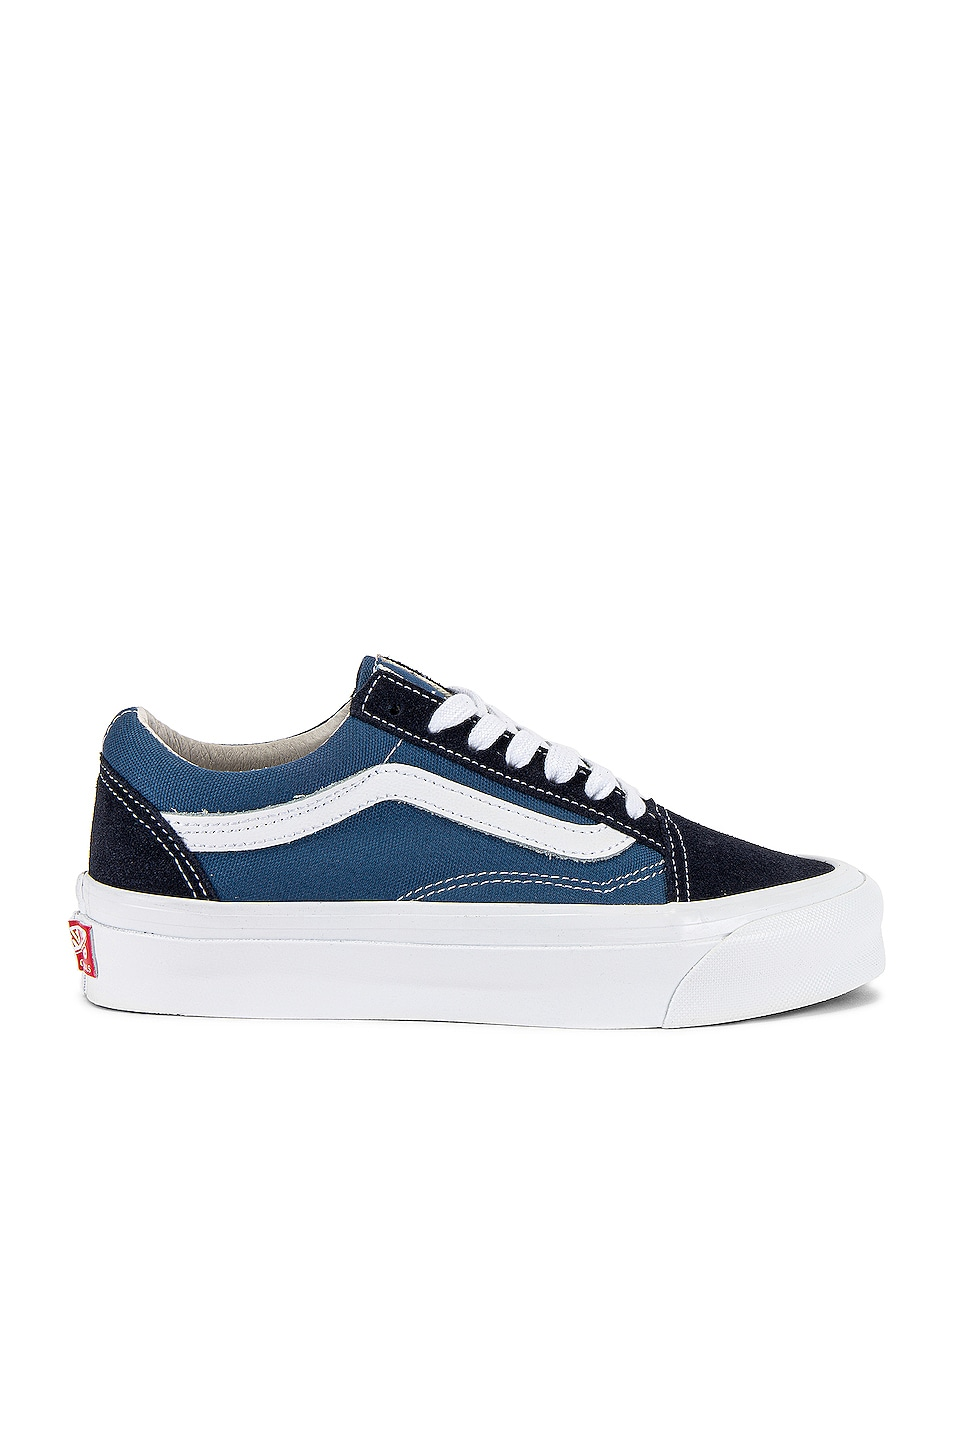 Image 1 of Vans Vault OG Old Skool LX in Navy & STV Navy